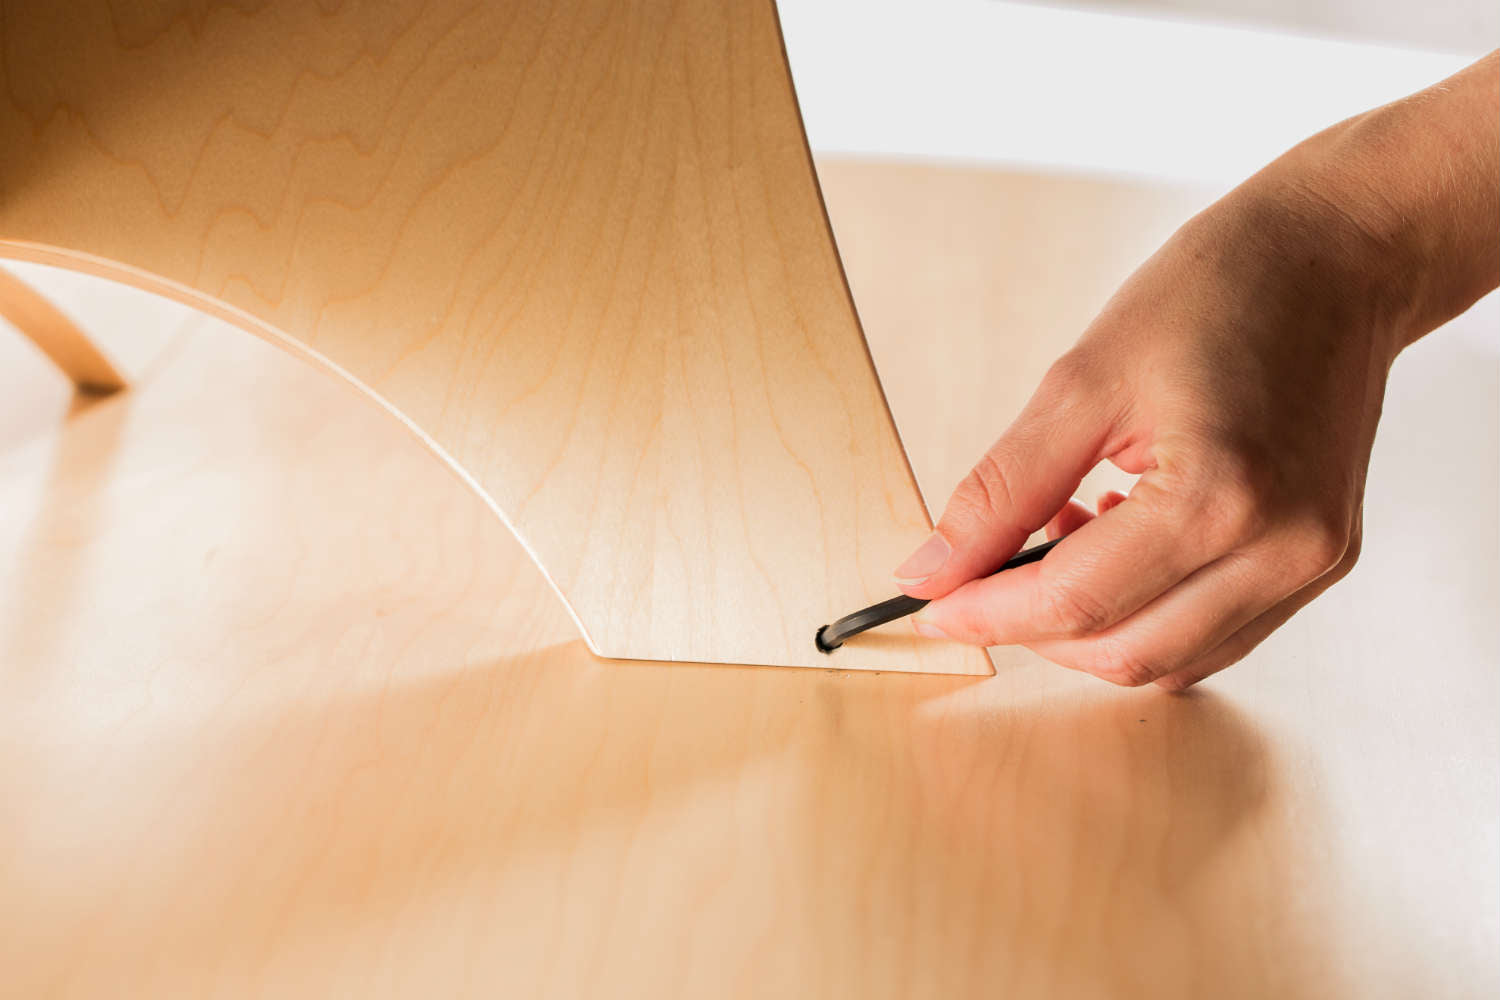 Assembling Simbly Furniture without Nails or Screws